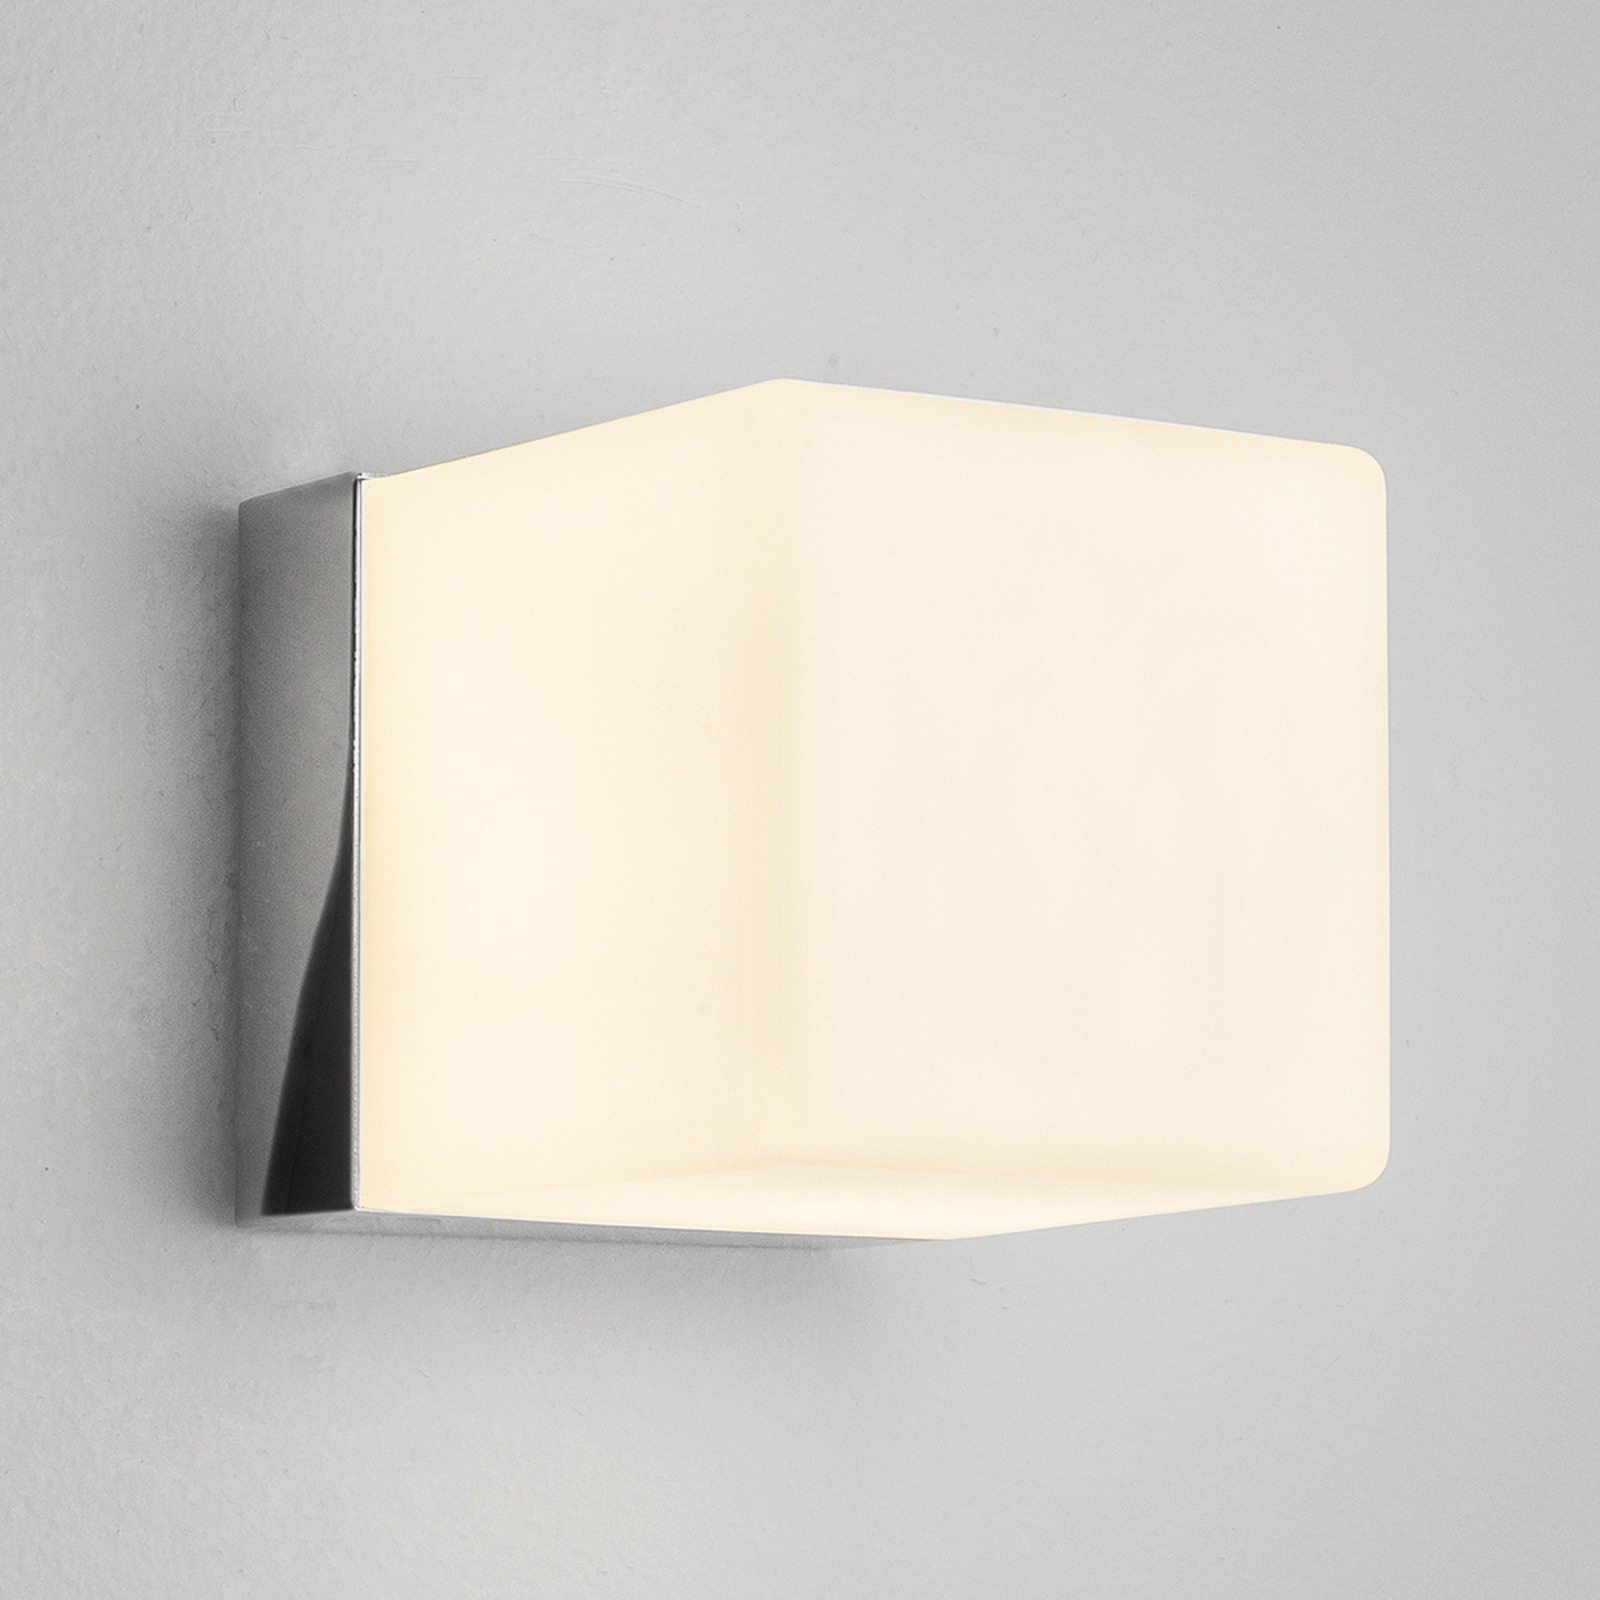 Cube Wall Light Simple_1020026_1